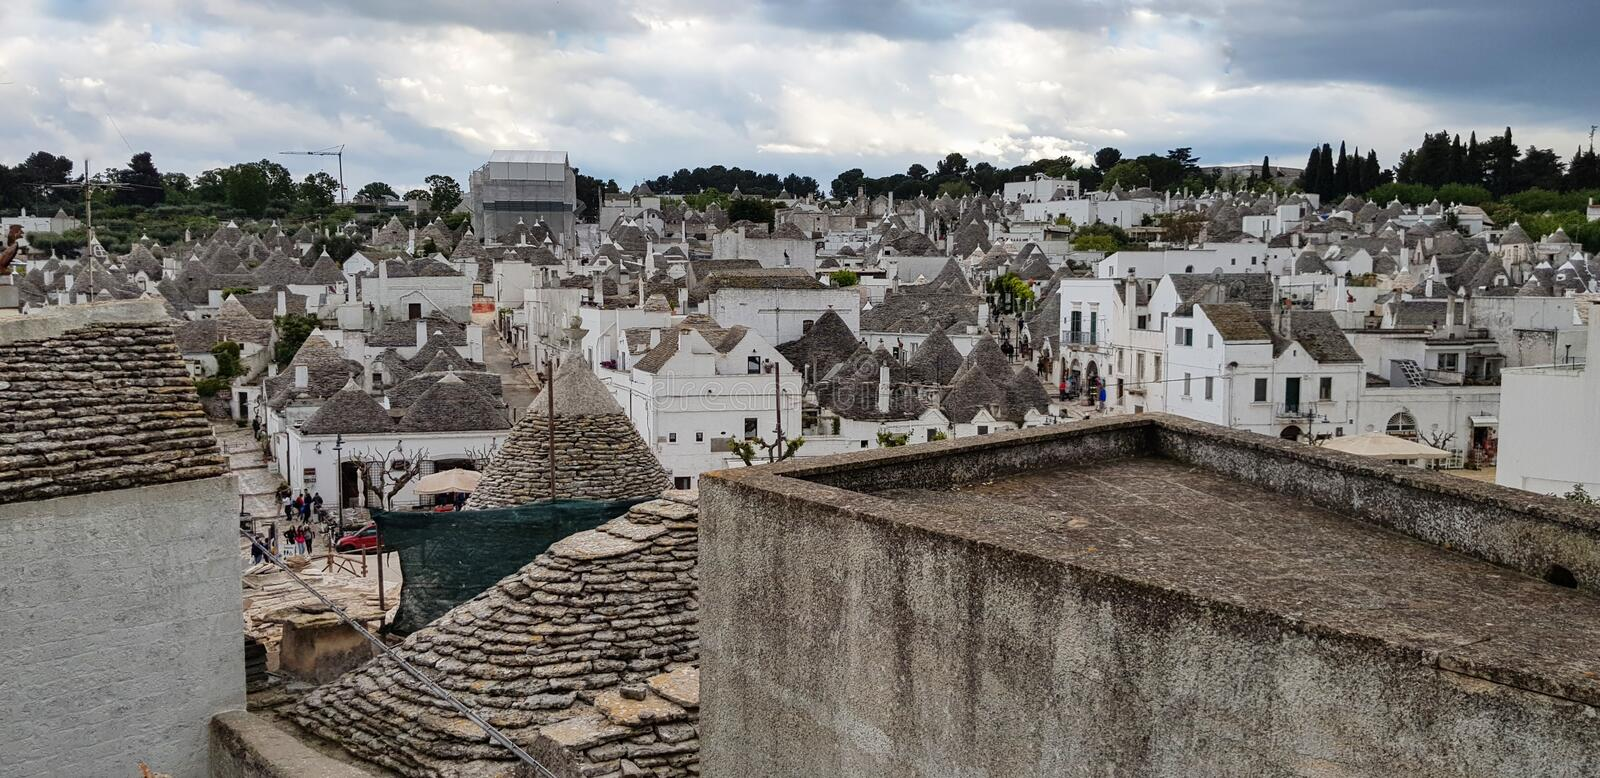 Beautiful town of Alberobello with trulli houses. It is an Italian town in the metropolitan city of Bari, in Puglia,  Italy.  royalty free stock photography